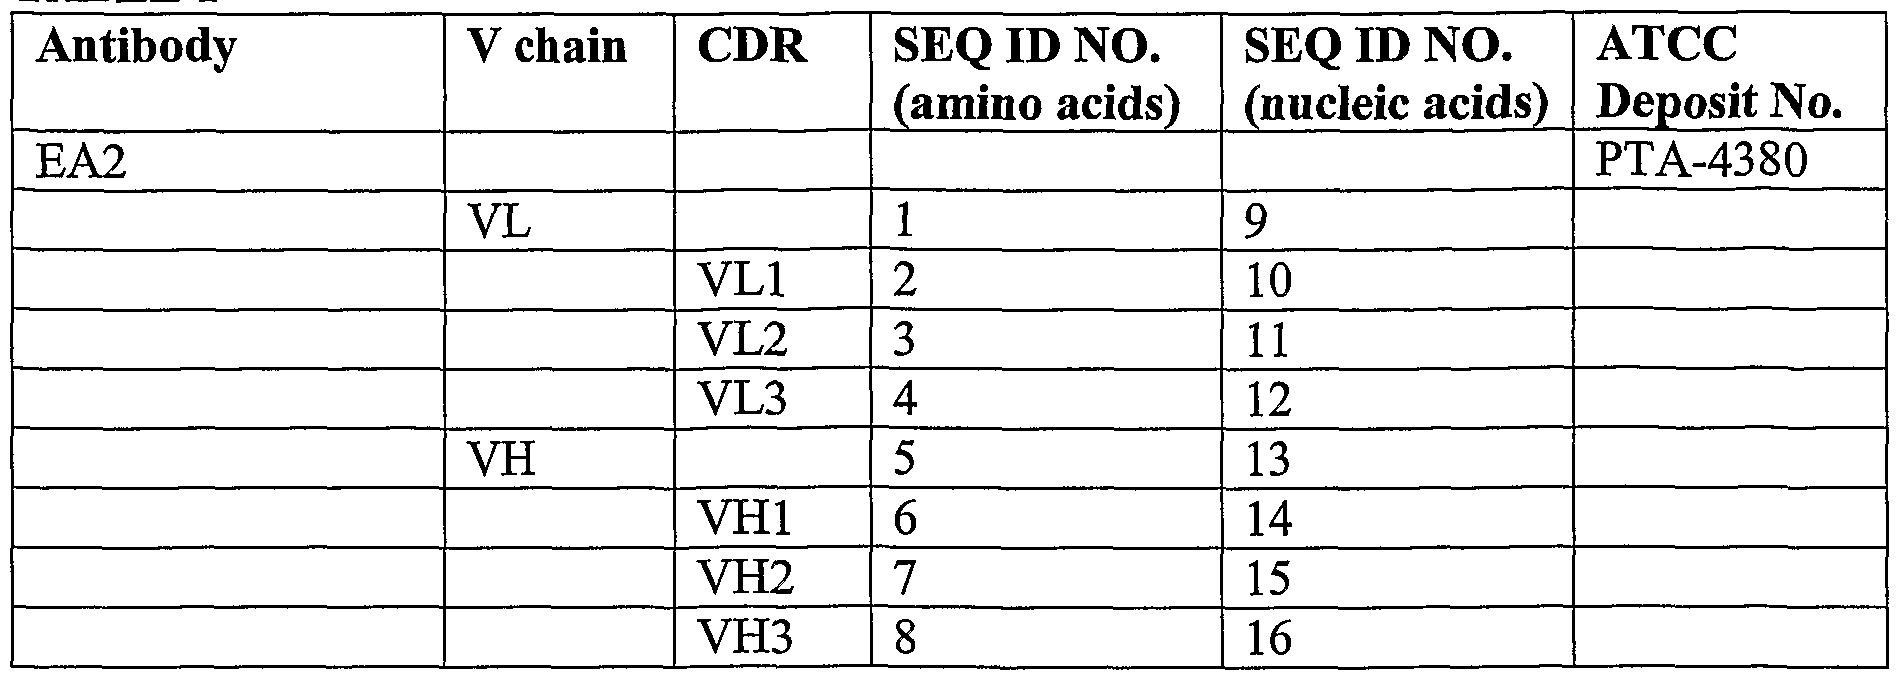 WO2004014292A2 - EphA2 AGONISTIC MONOCLONAL ANTIBODIES AND